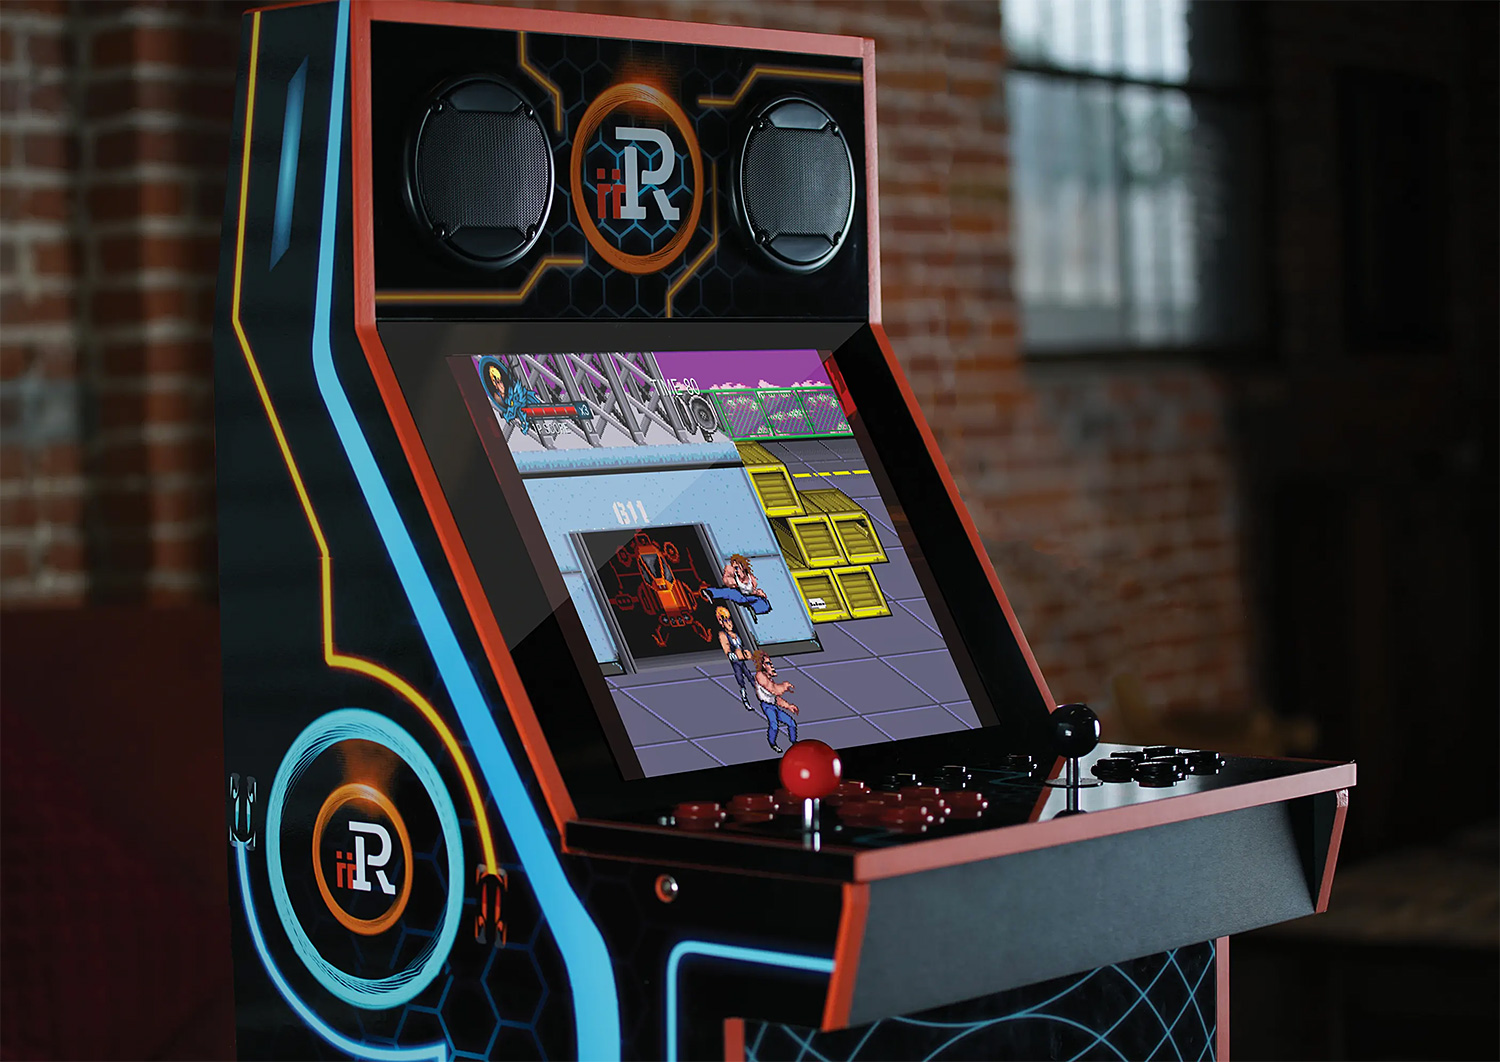 Fit The Whole Arcade Into Your Game Room With iiRcade at werd.com